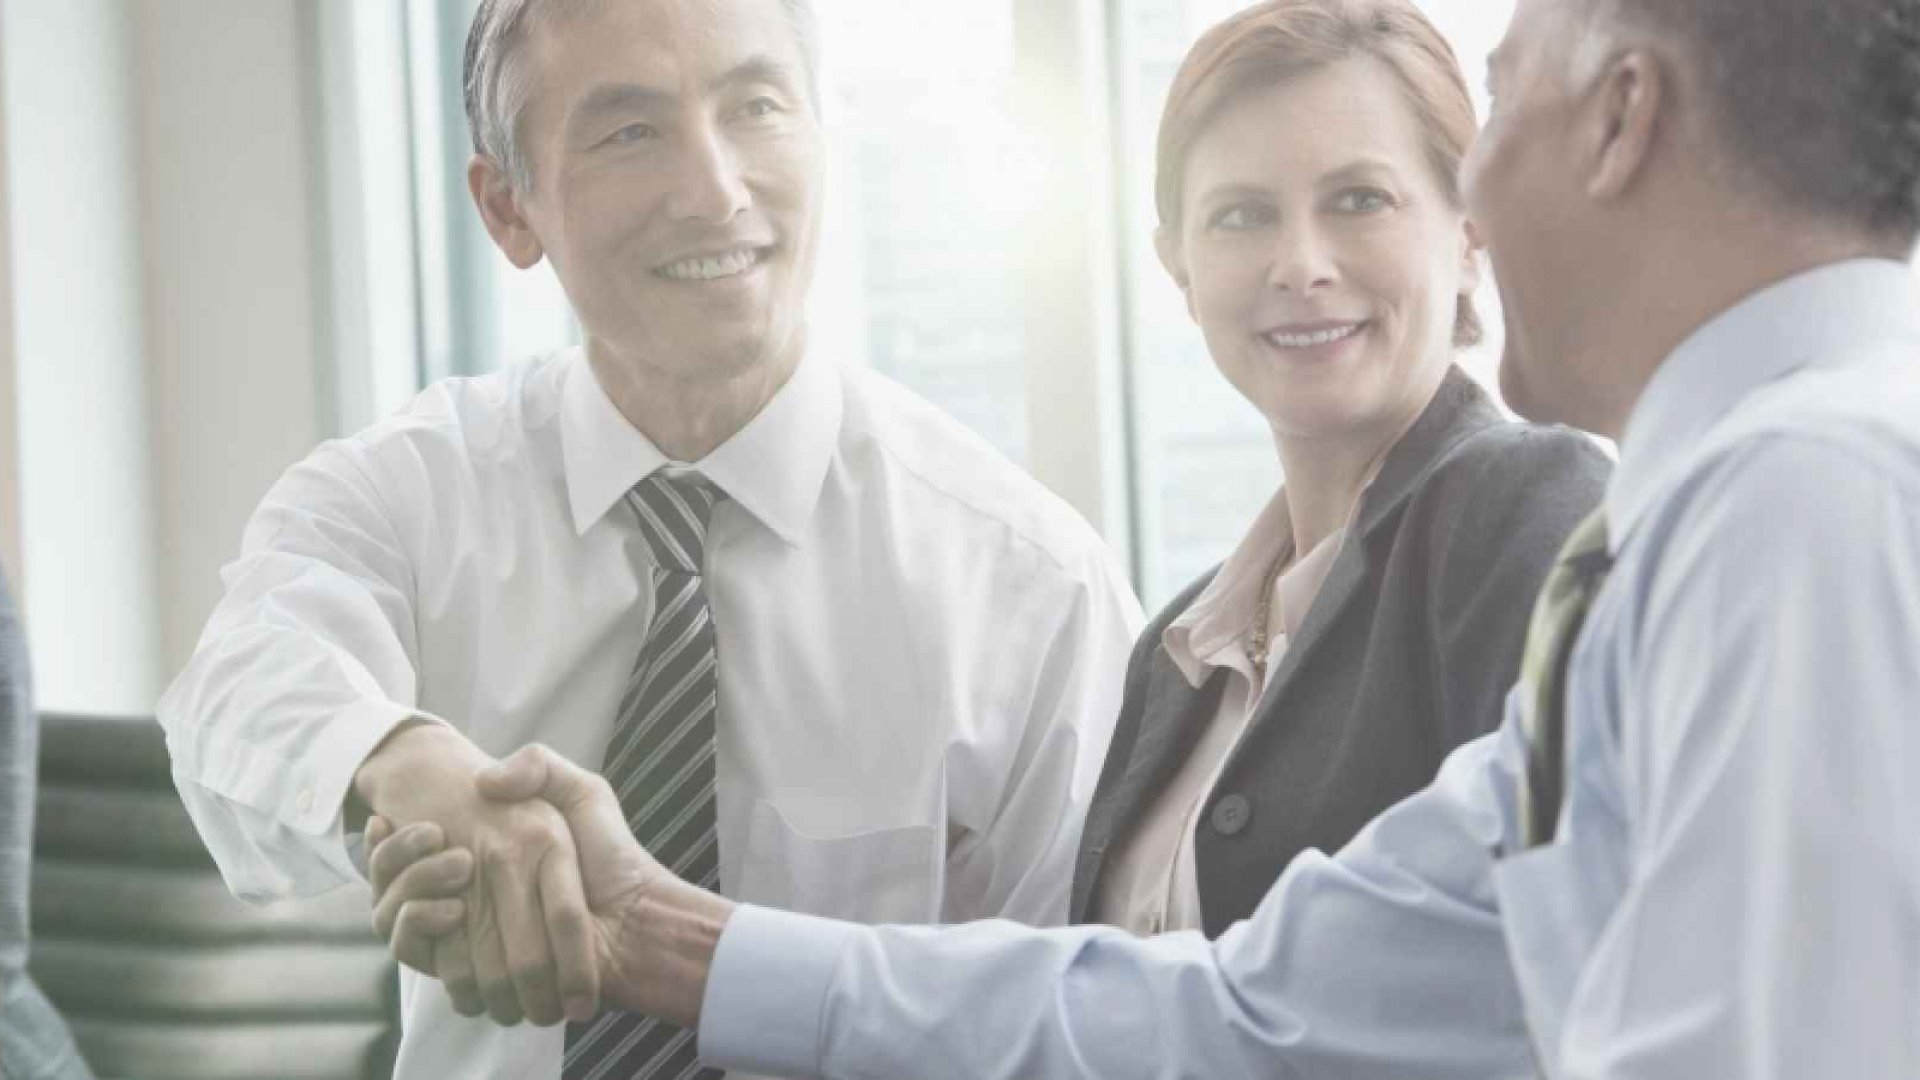 8 Lessons When Selling Your Company That Every Business Owner Should Know